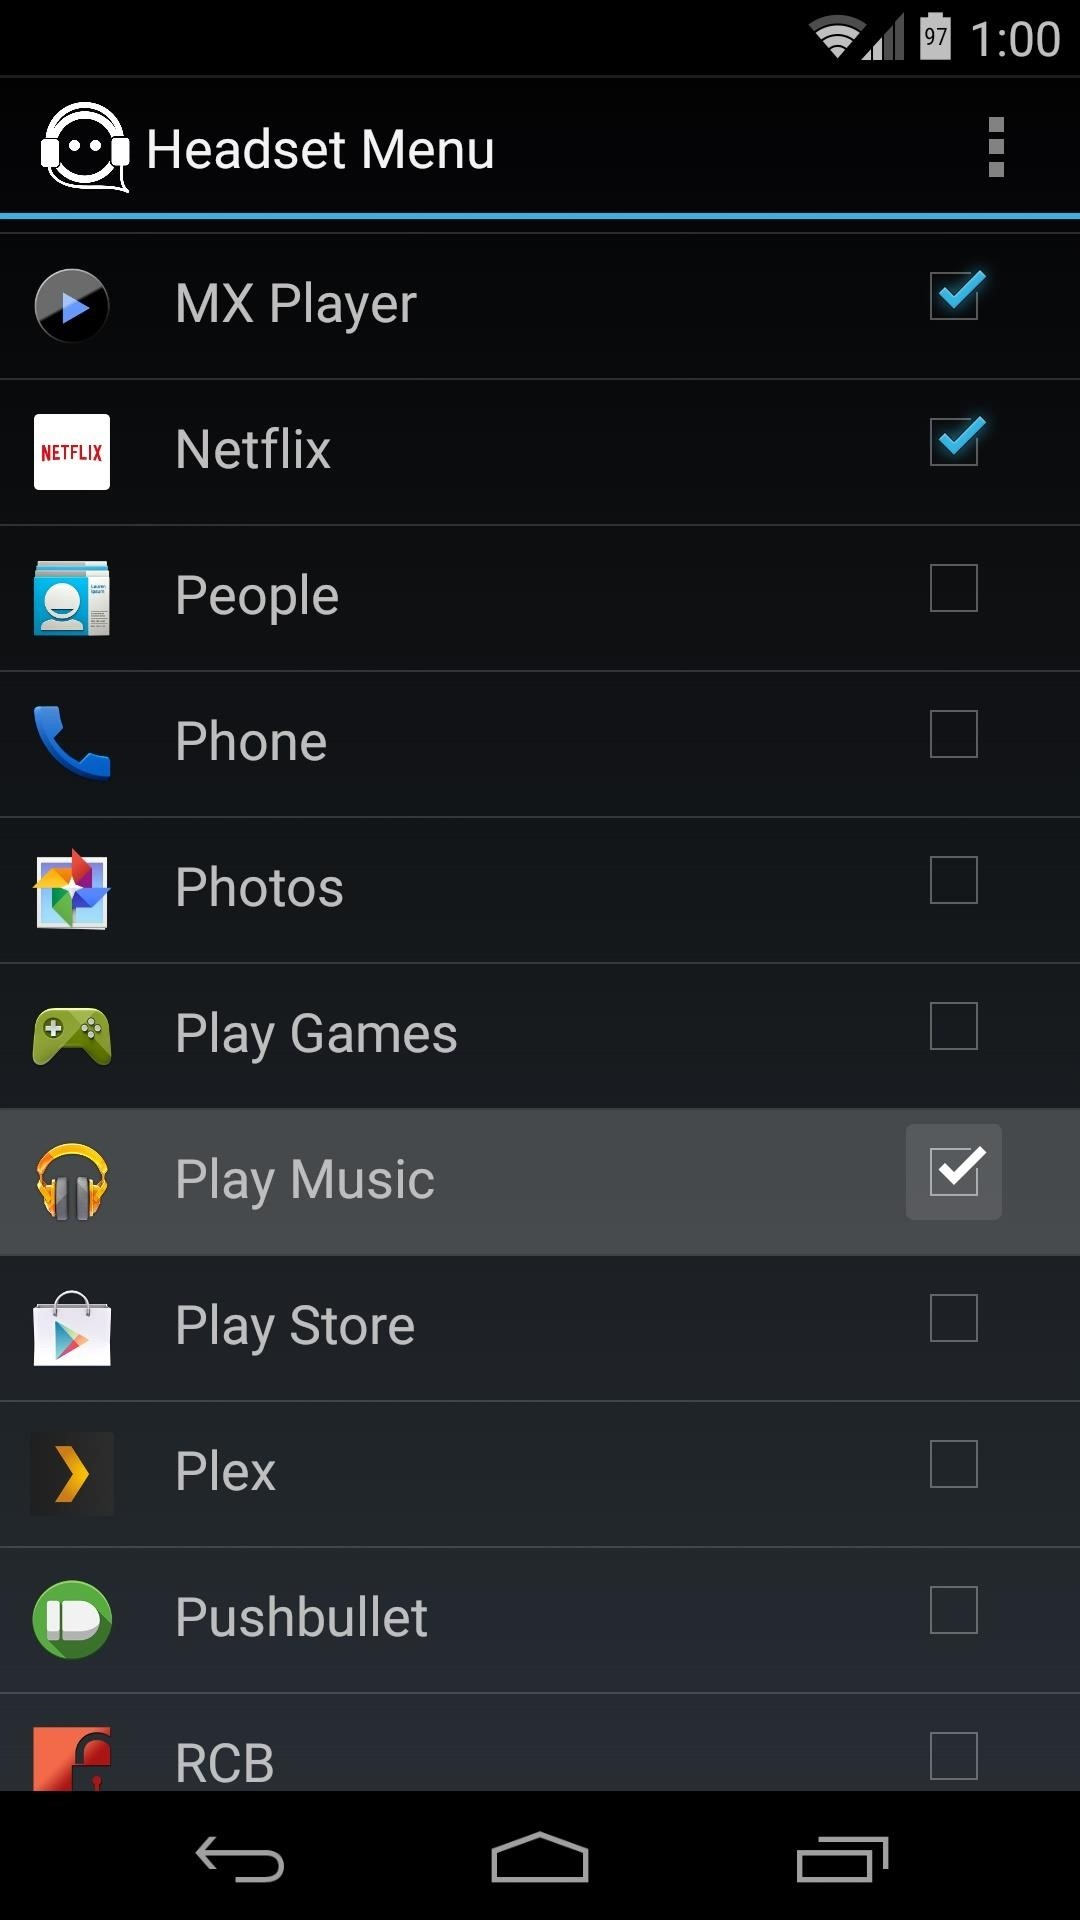 Get Instant Access to Your Favorite Media Apps on Android When You Connect Your Headphones